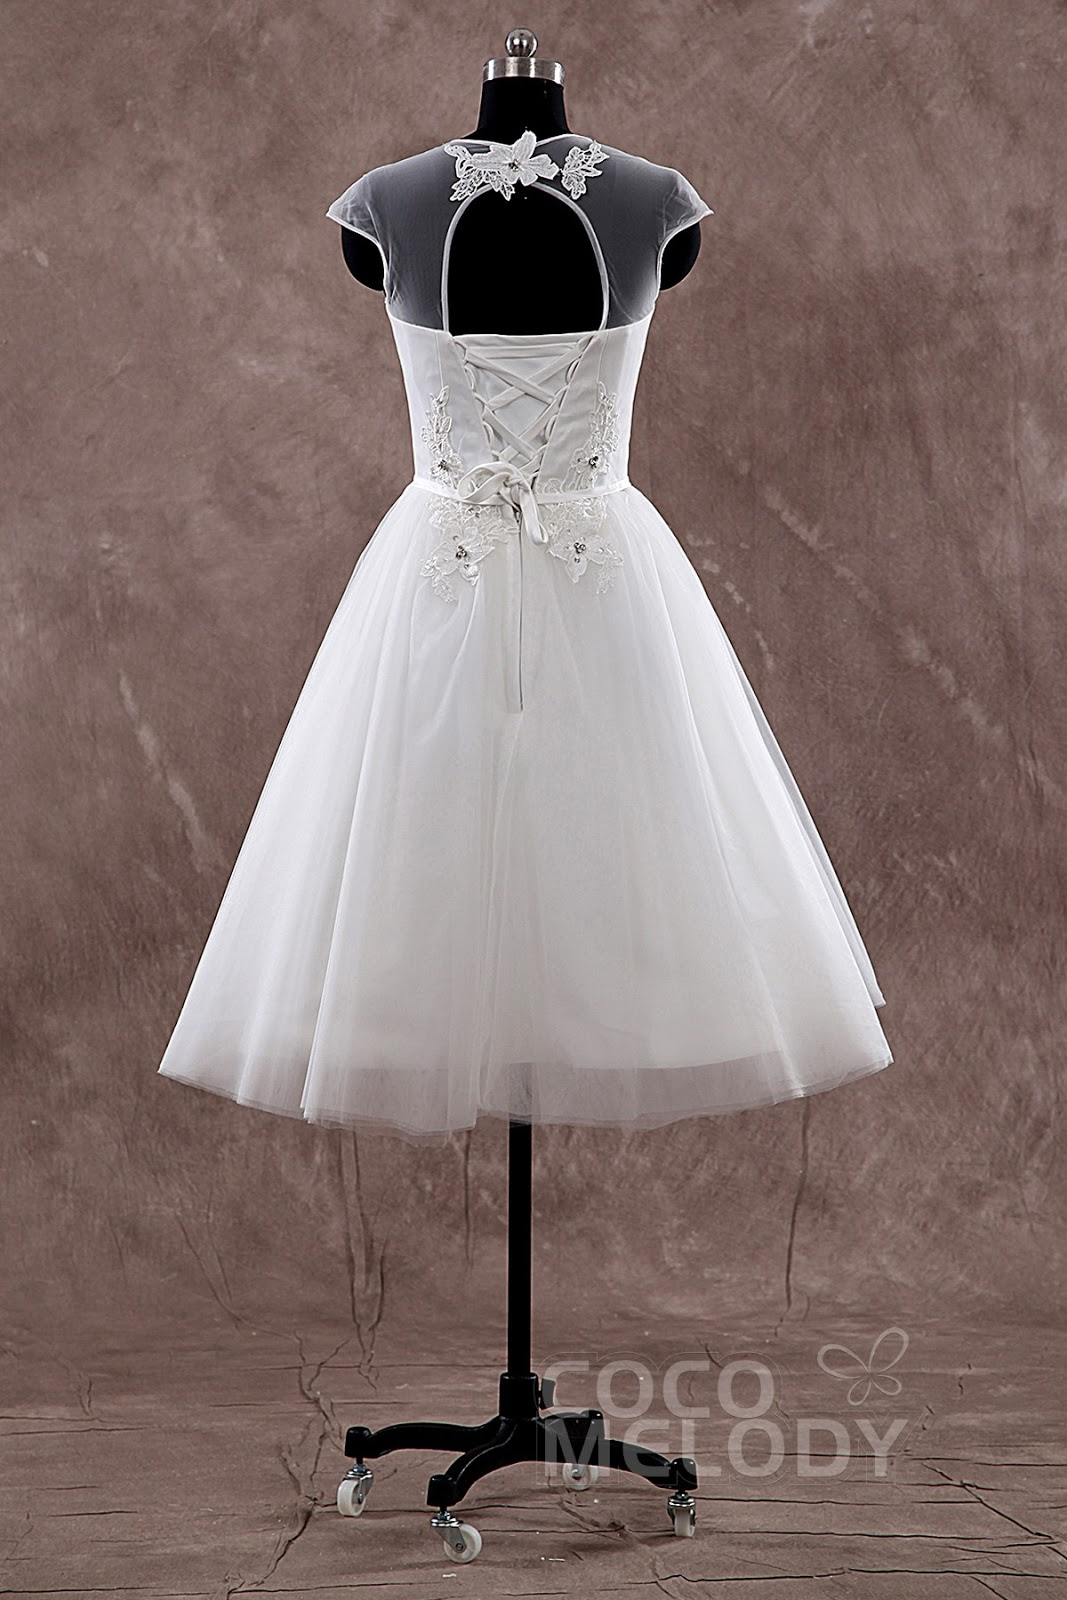 Ball Gown Illusion Natural Knee Length Tulle Ivory Cap Sleeve Lace Up Corset Wedding Dress